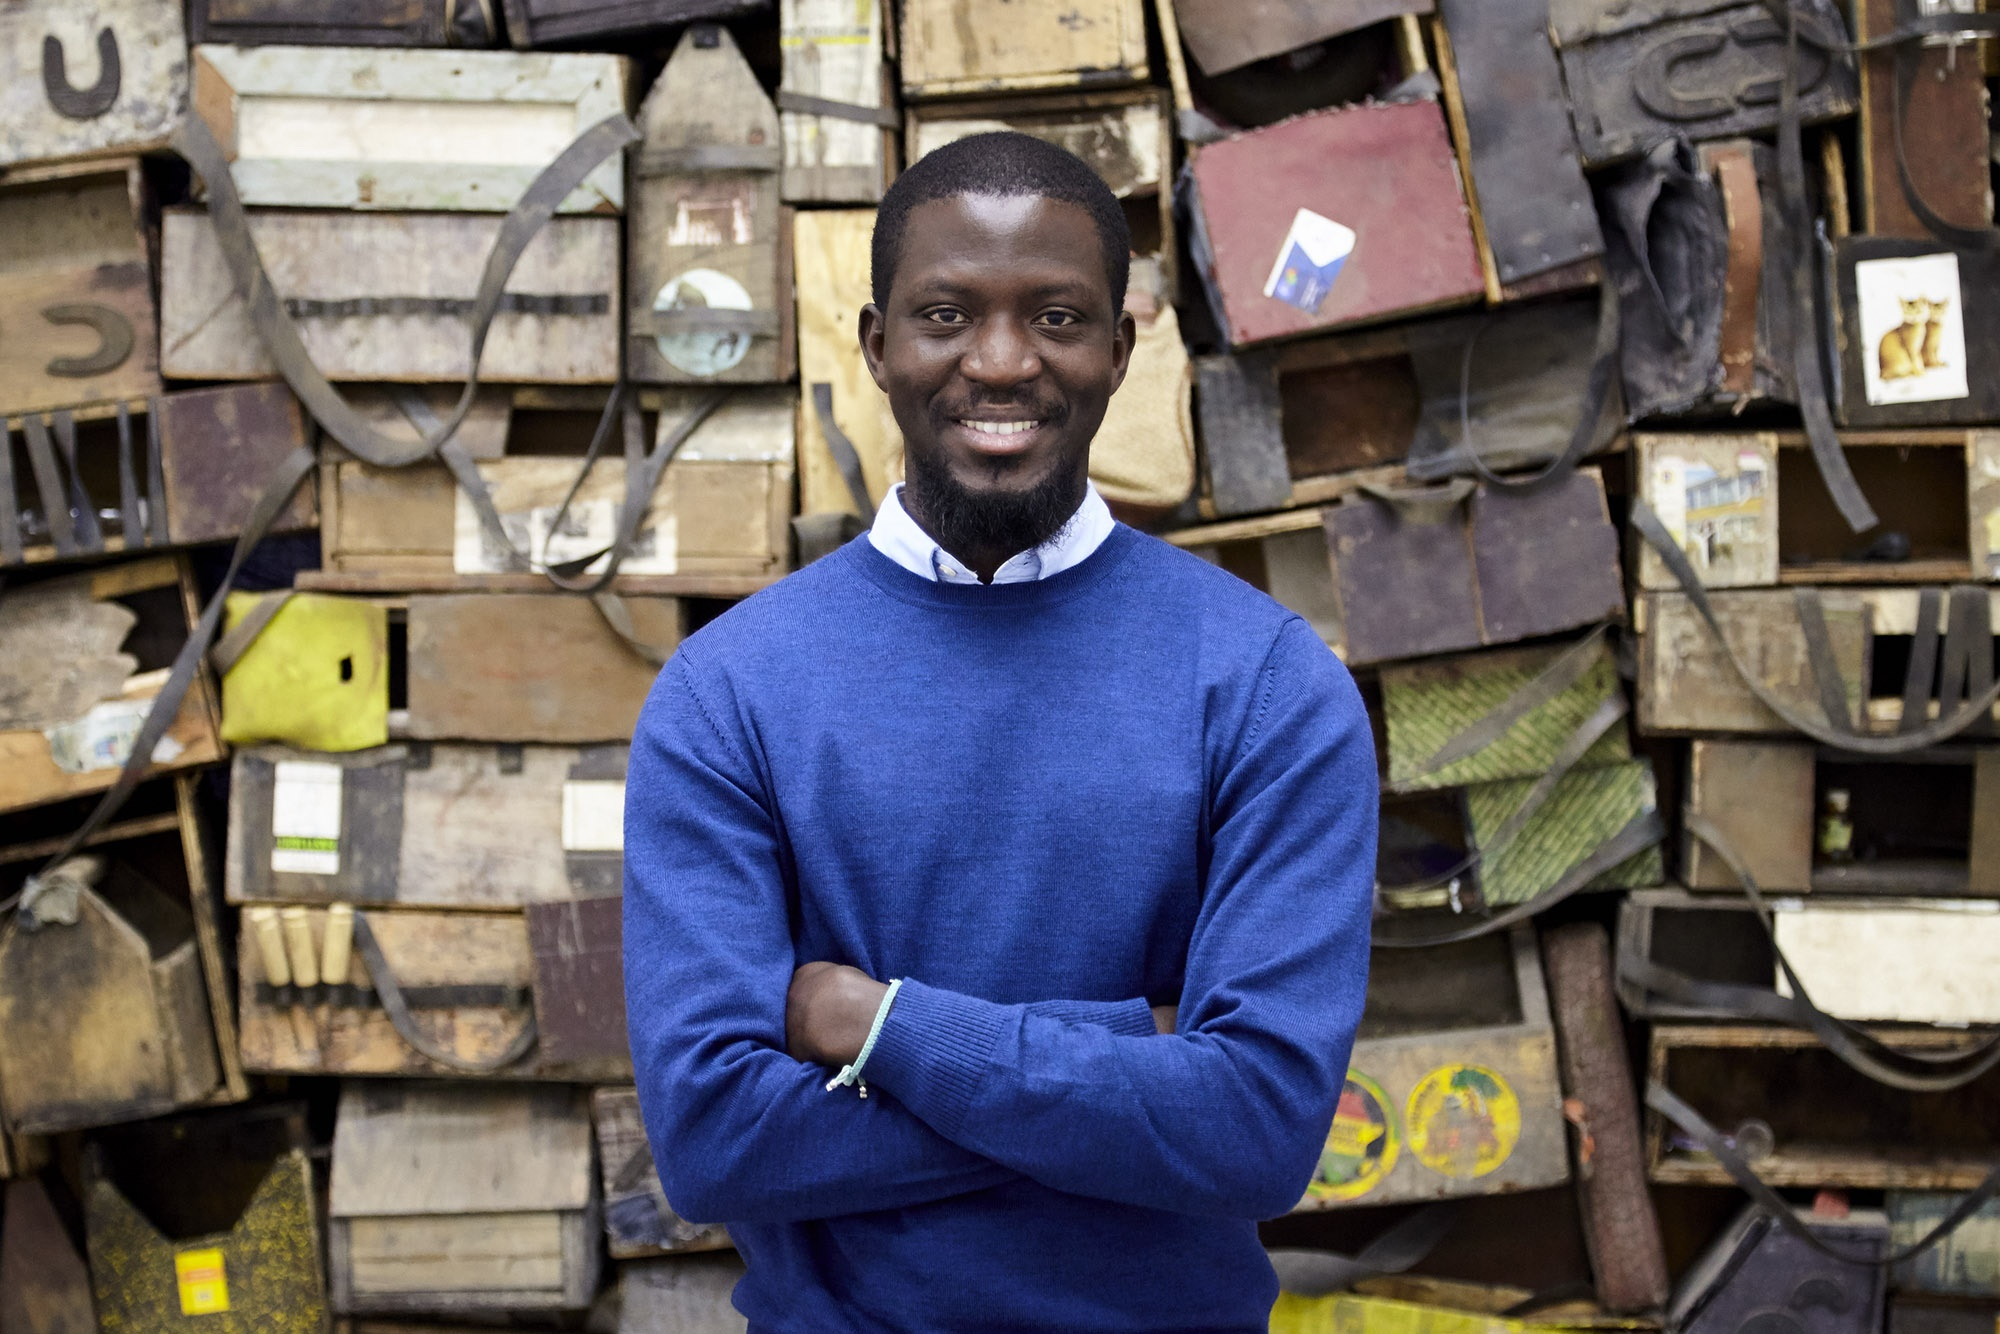 photograph of artist Ibrahim Mahama in front of jute sacks collected at Ghanian markets